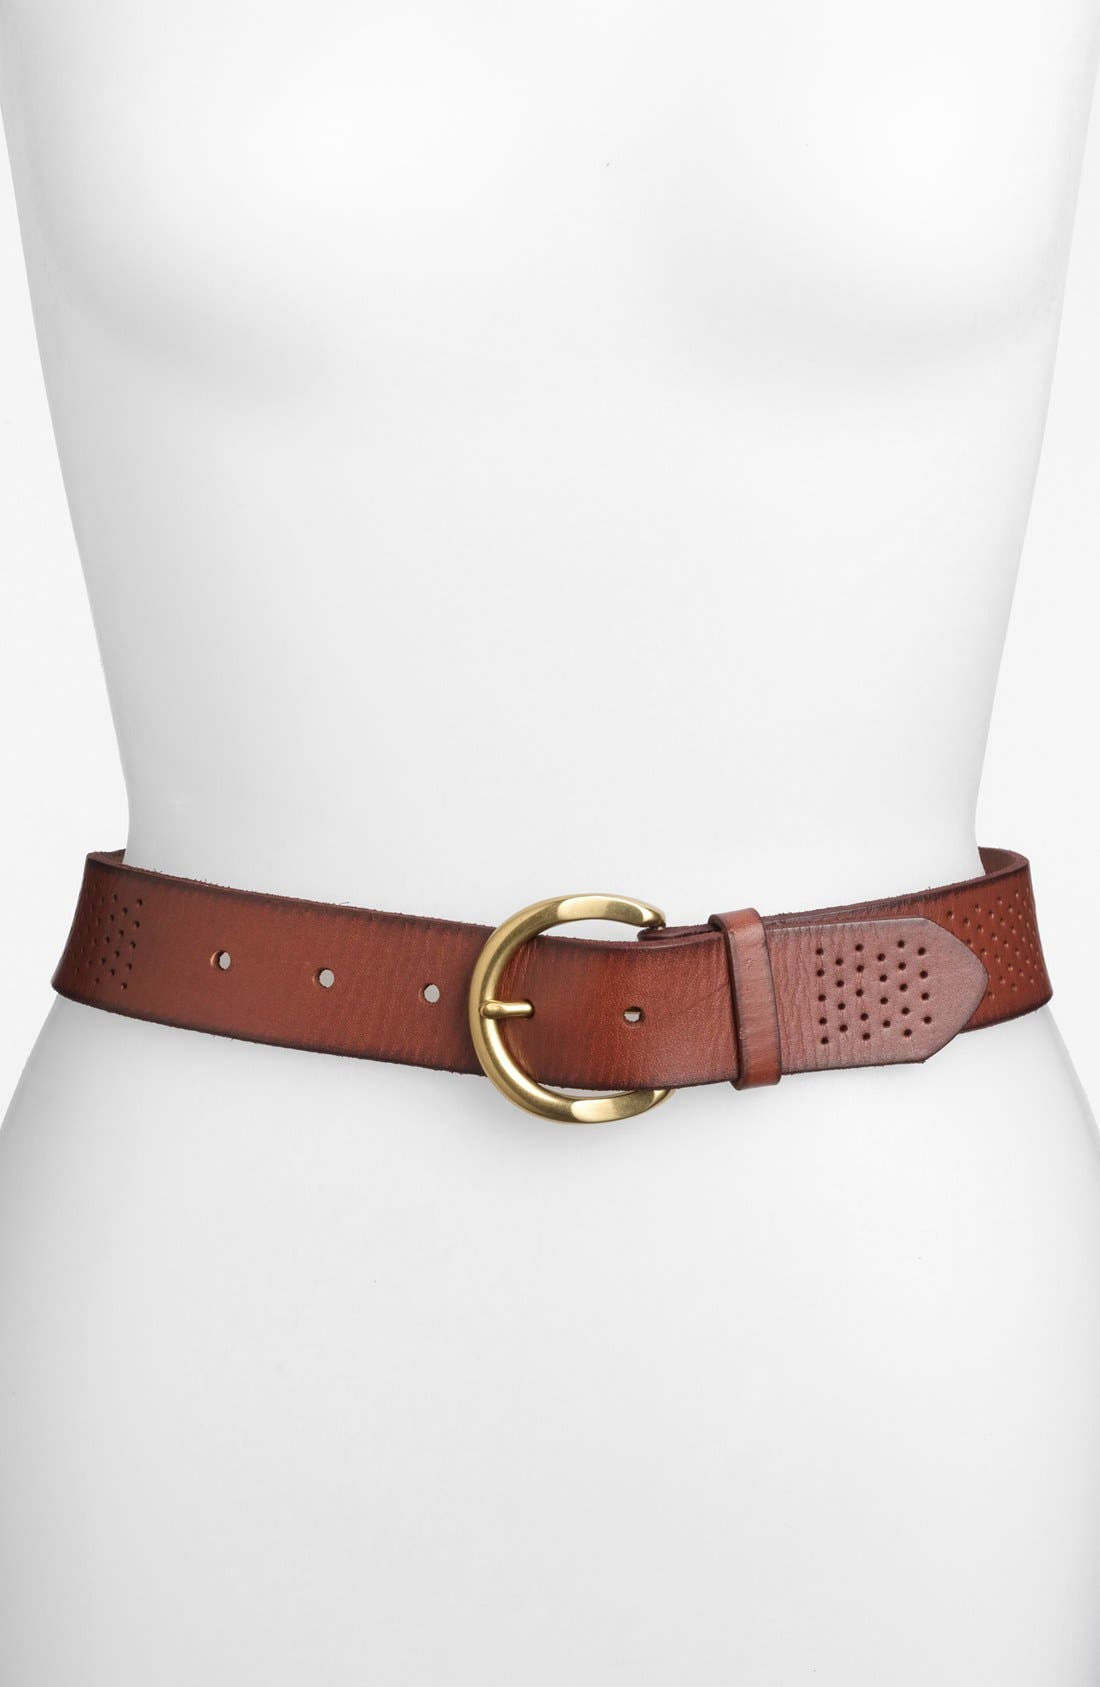 Main Image - Fossil Perforated Leather Belt